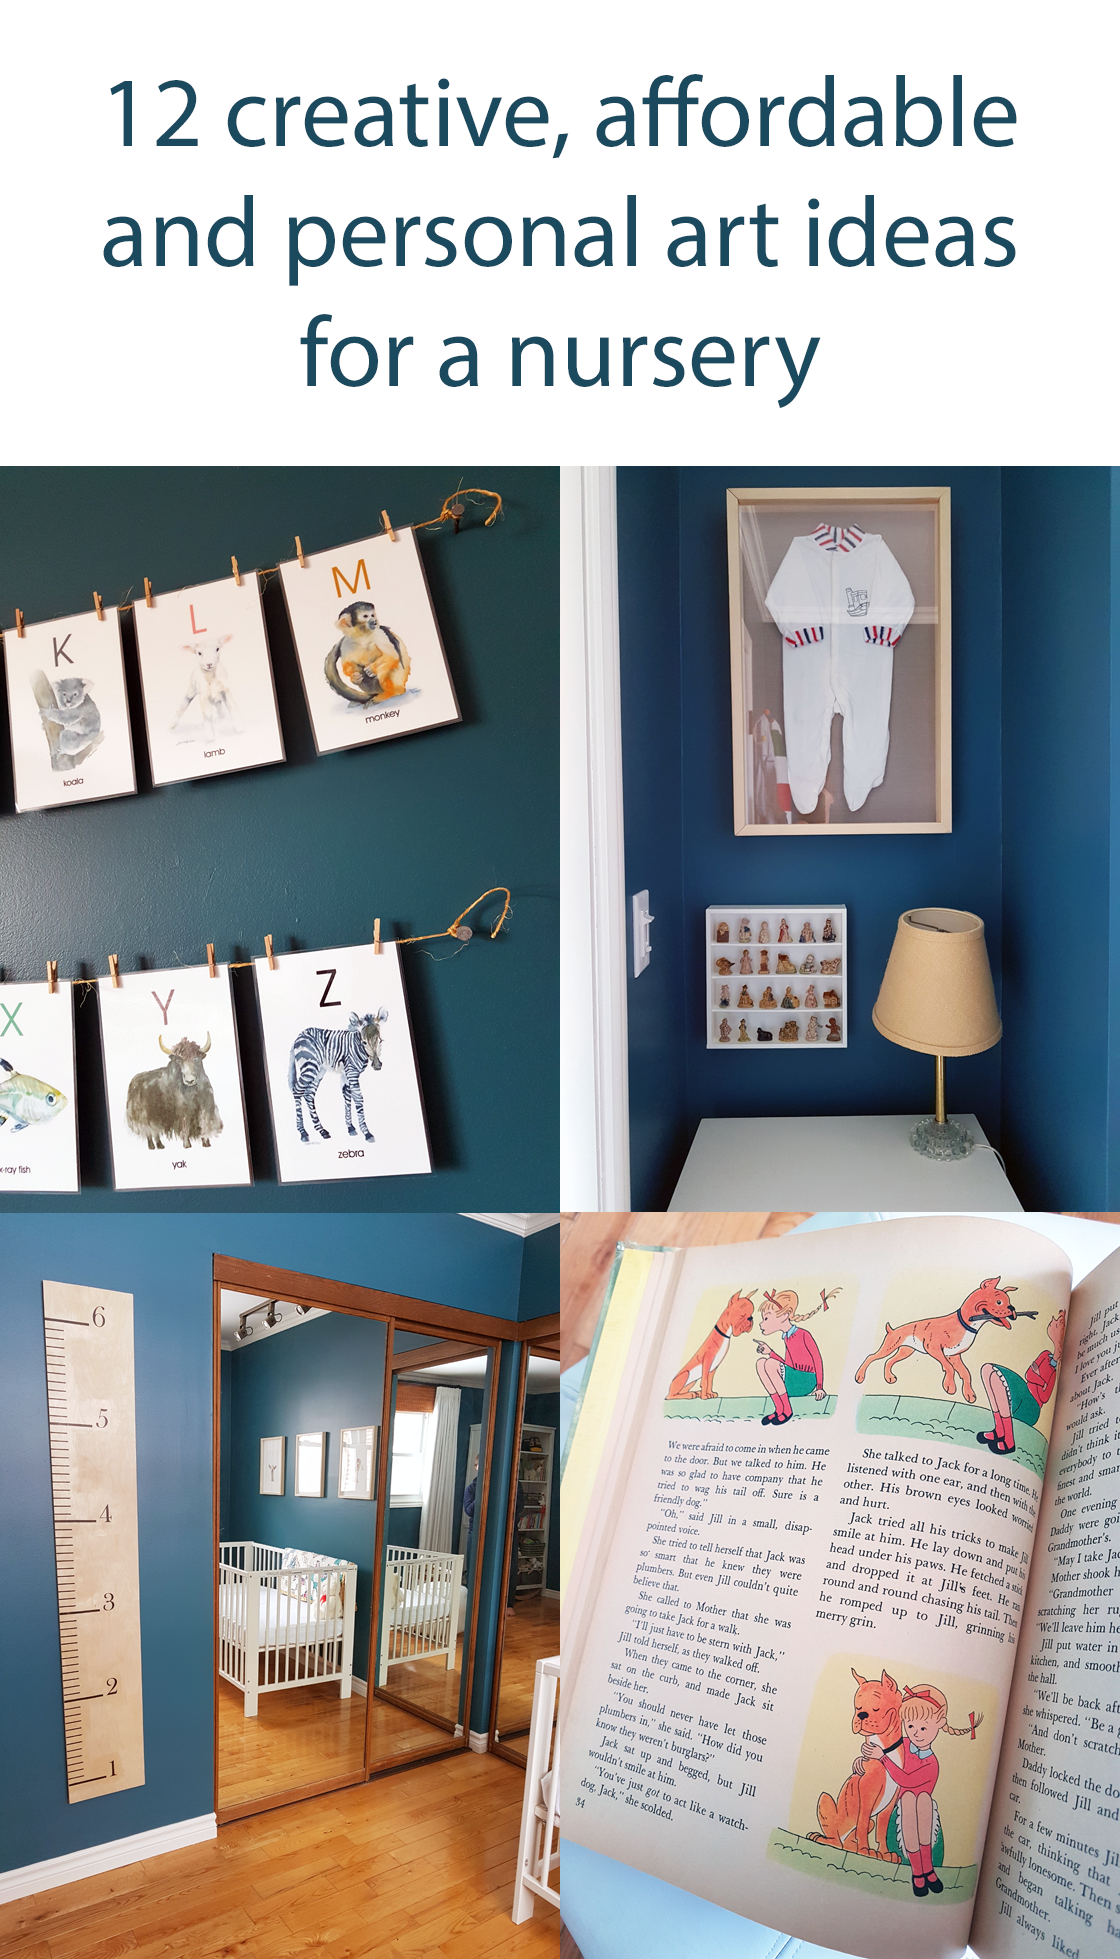 12 creative, affordable, personal ideas for nursery art